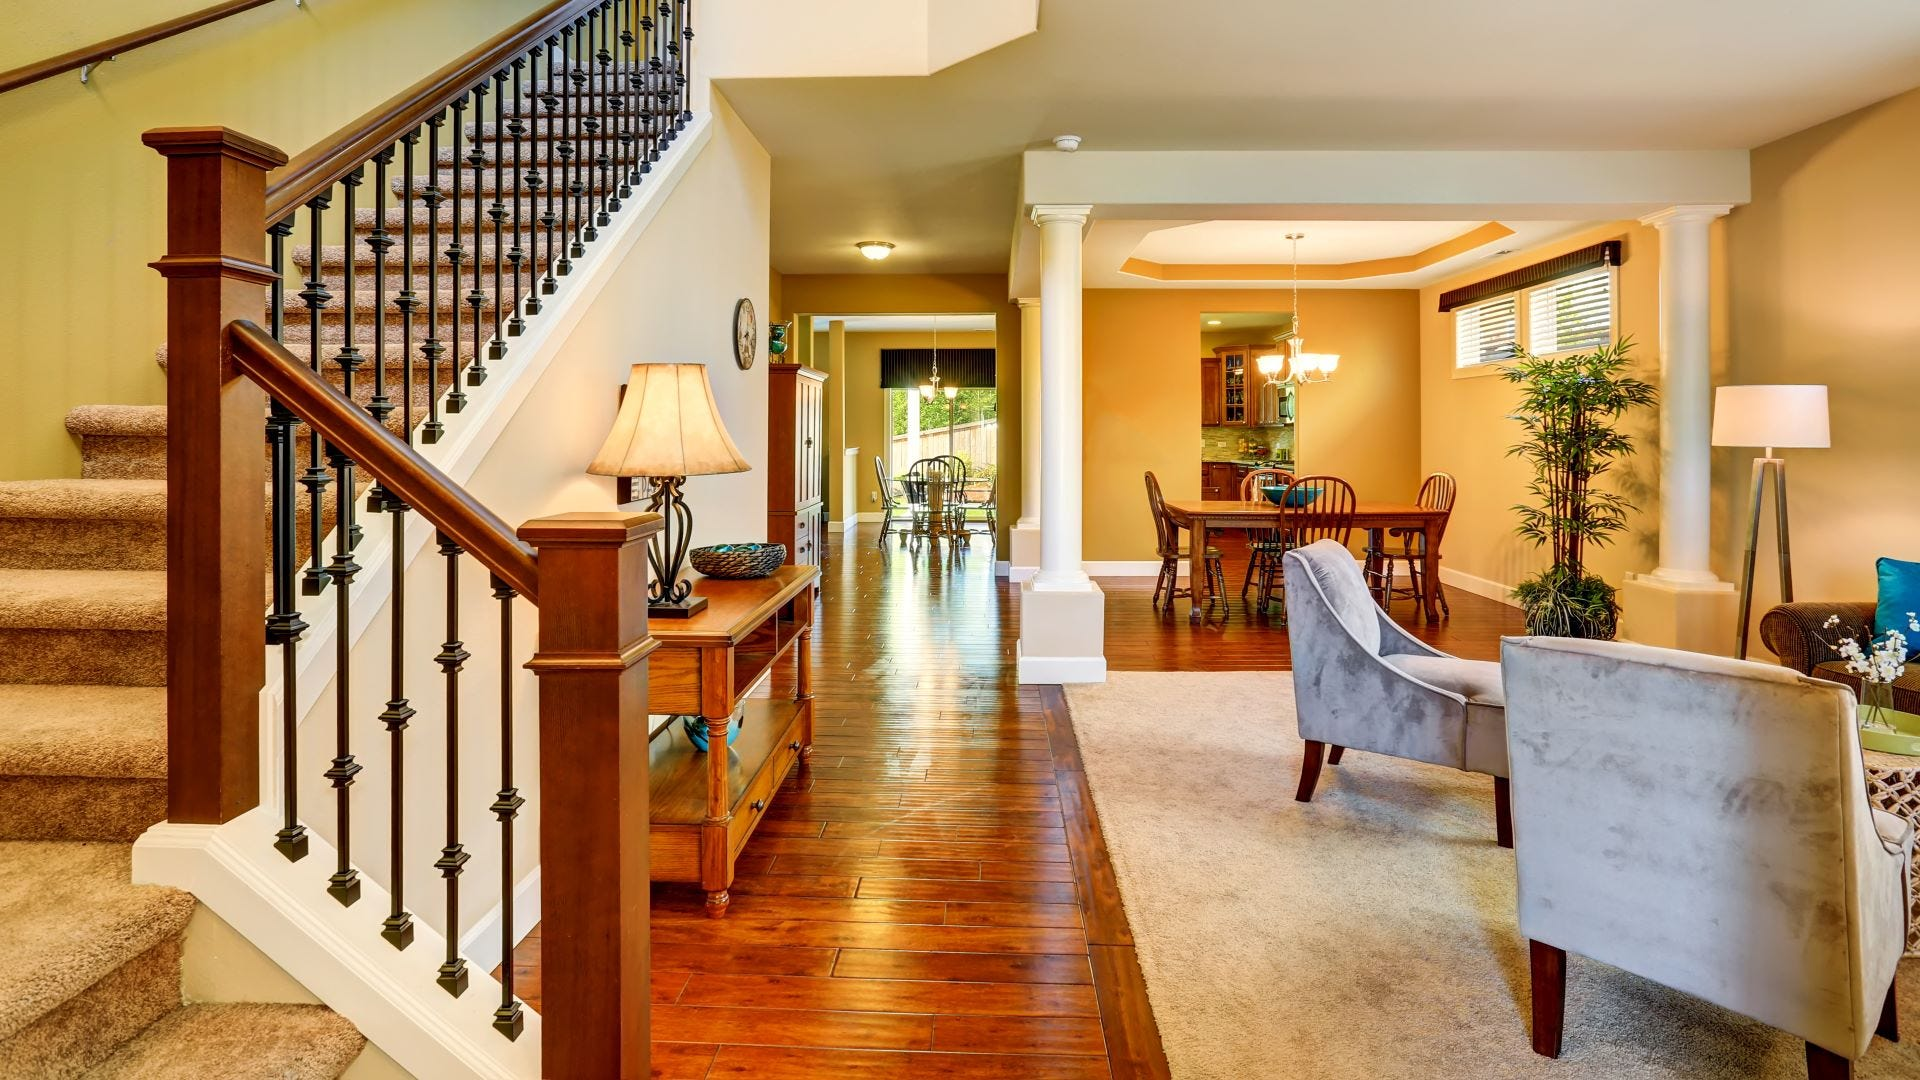 An open floor plan home with stairs.